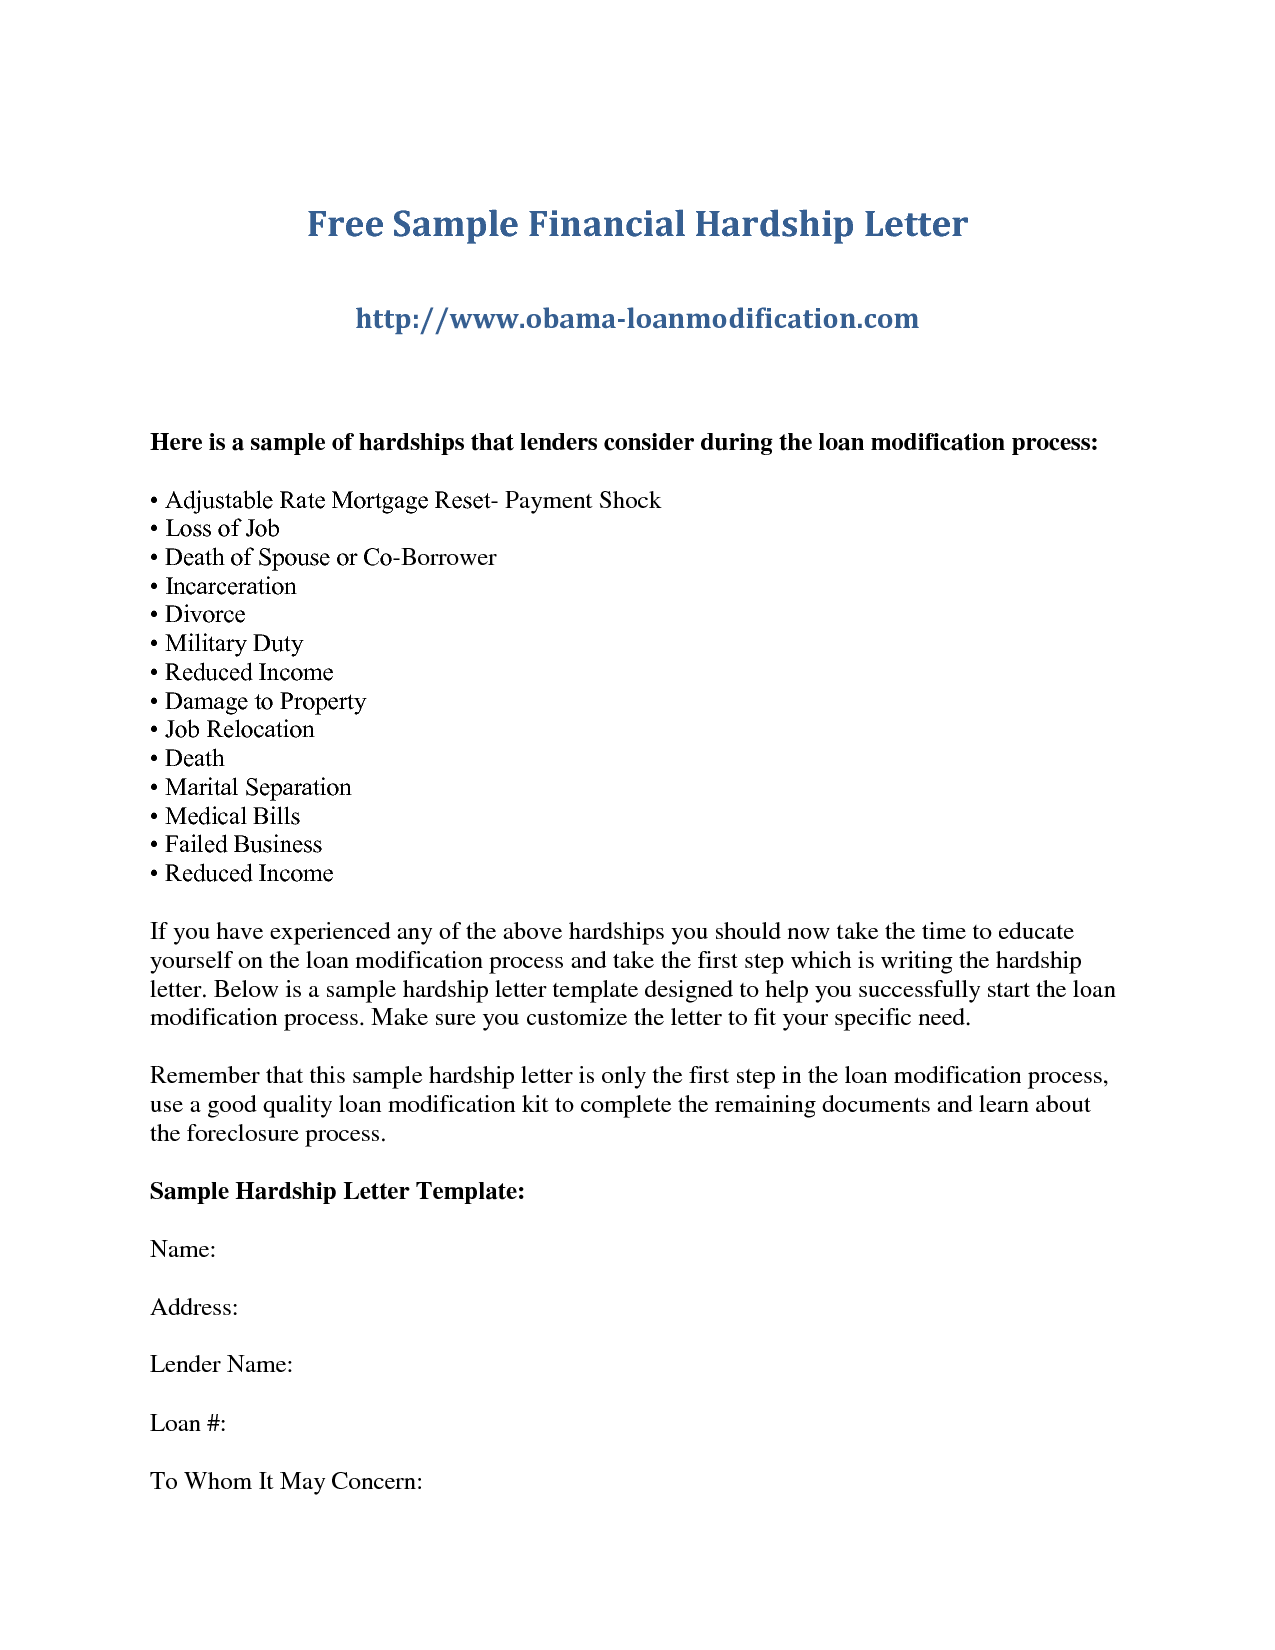 How To Write A Letter To A Creditor For Hardship  Google Search